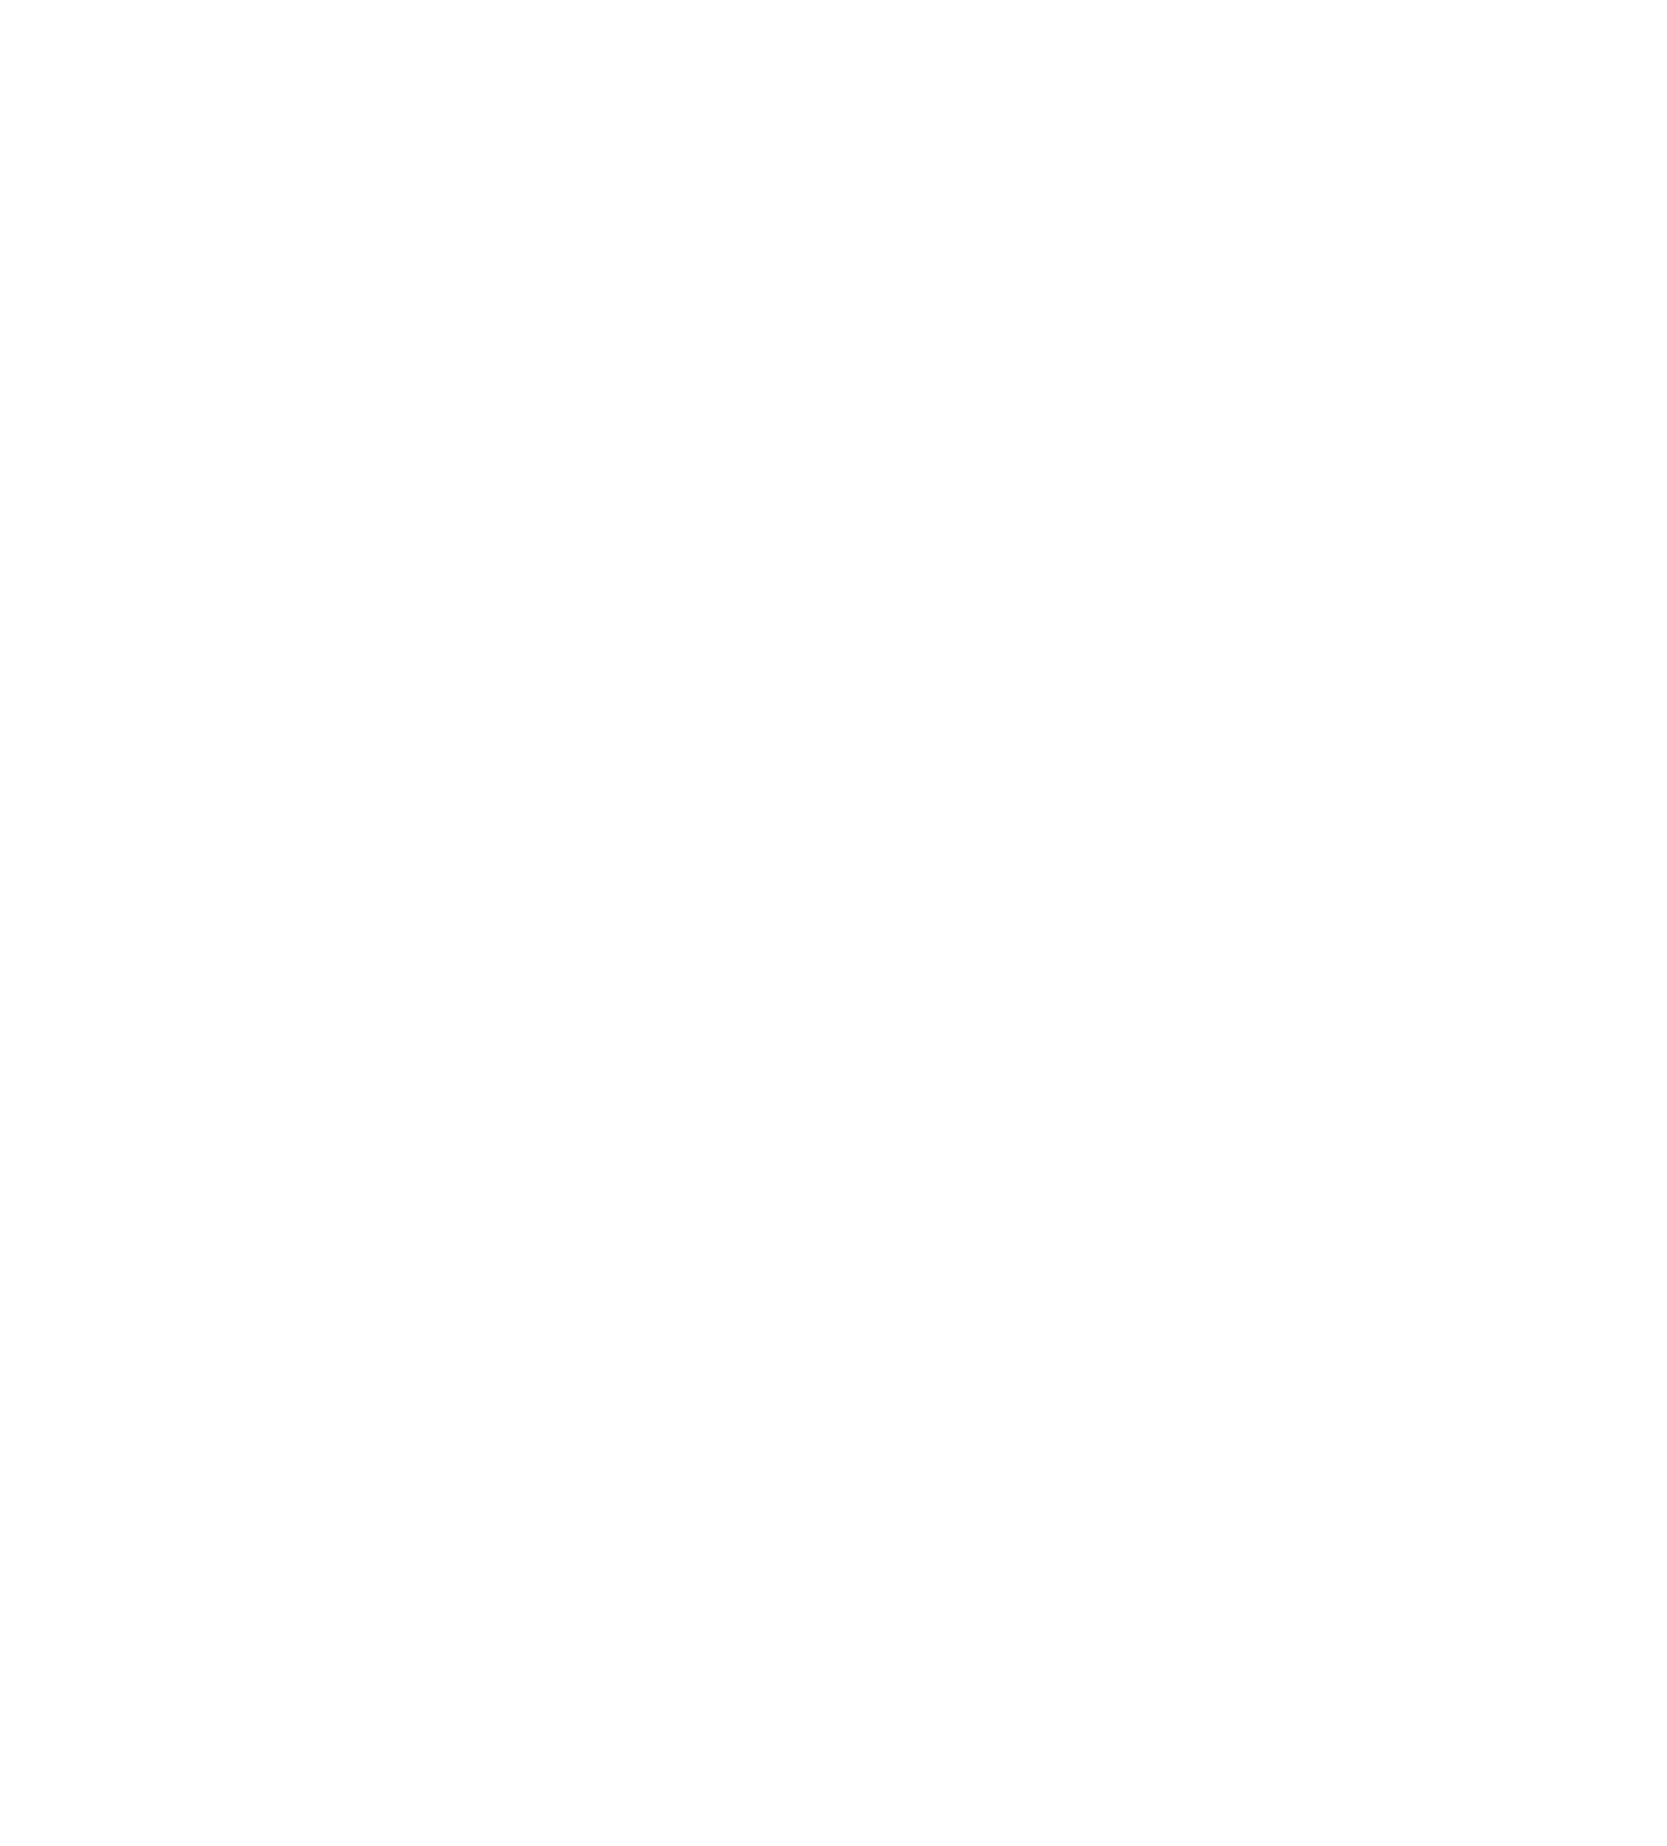 hosted by Proven Recruiting